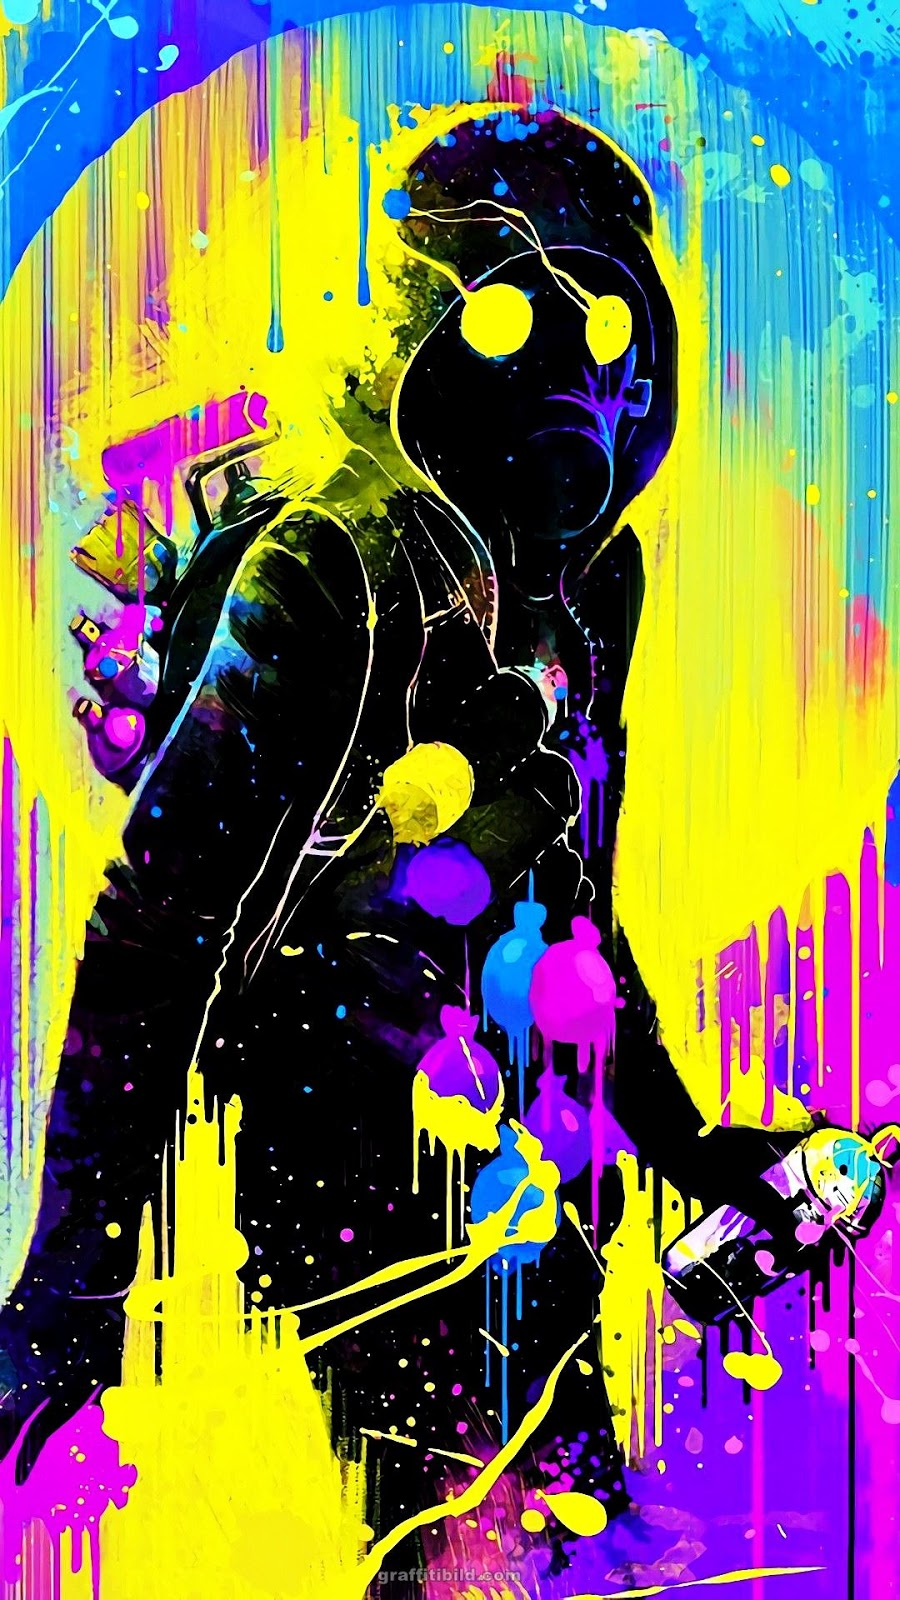 Graffiti, Wallpapers, Mobile, Handys, Android, iPhone, Hintergründe